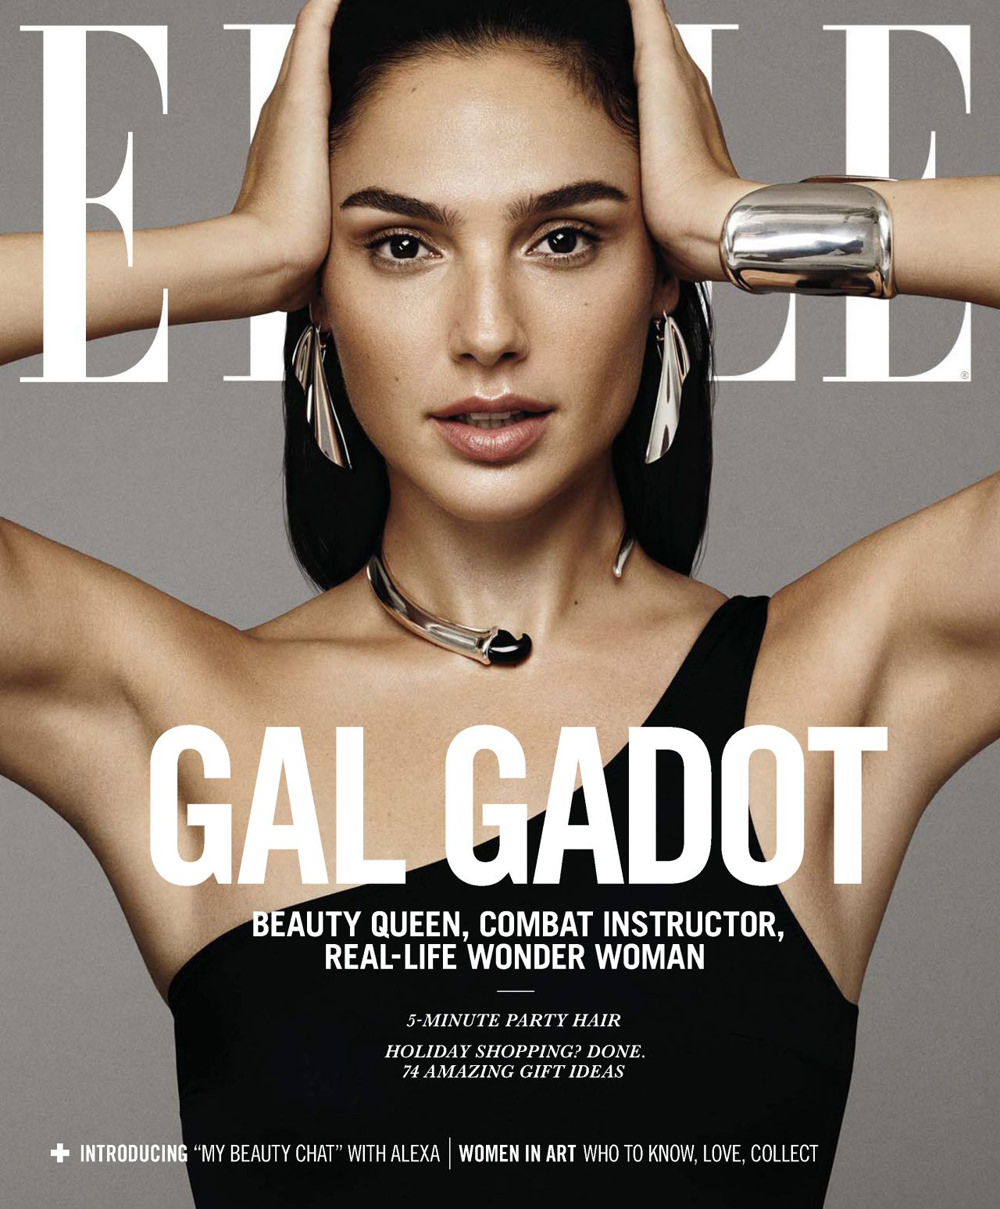 gal gadot covers the december 2017 issue of elle magazine